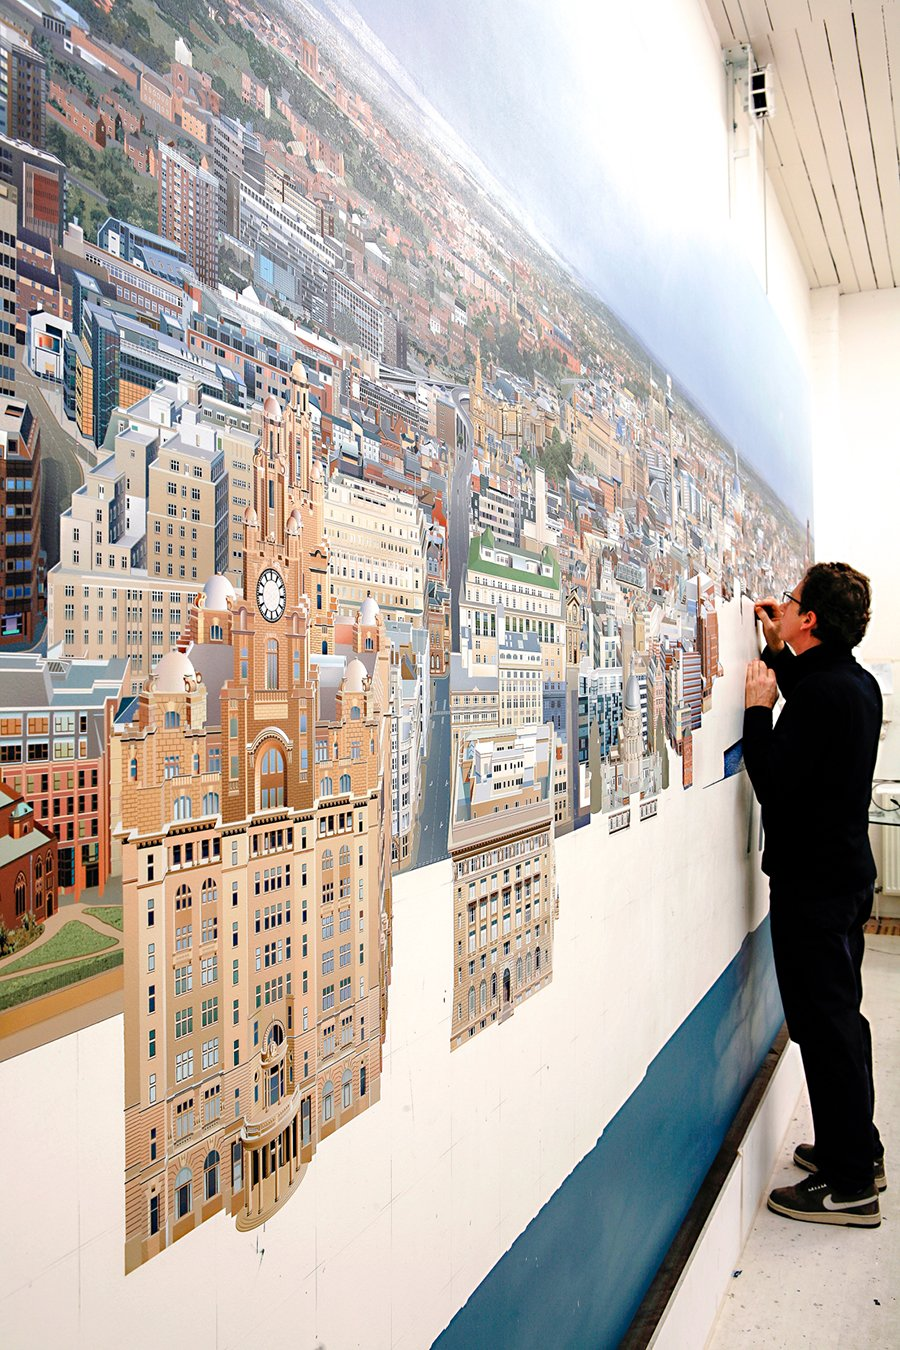 Ben Johnson The Liverpool Cityscape (progress) 2008 Acrylic on canvas 96 x 192in / 244 x 488cm. Photo courtesy of the artist.